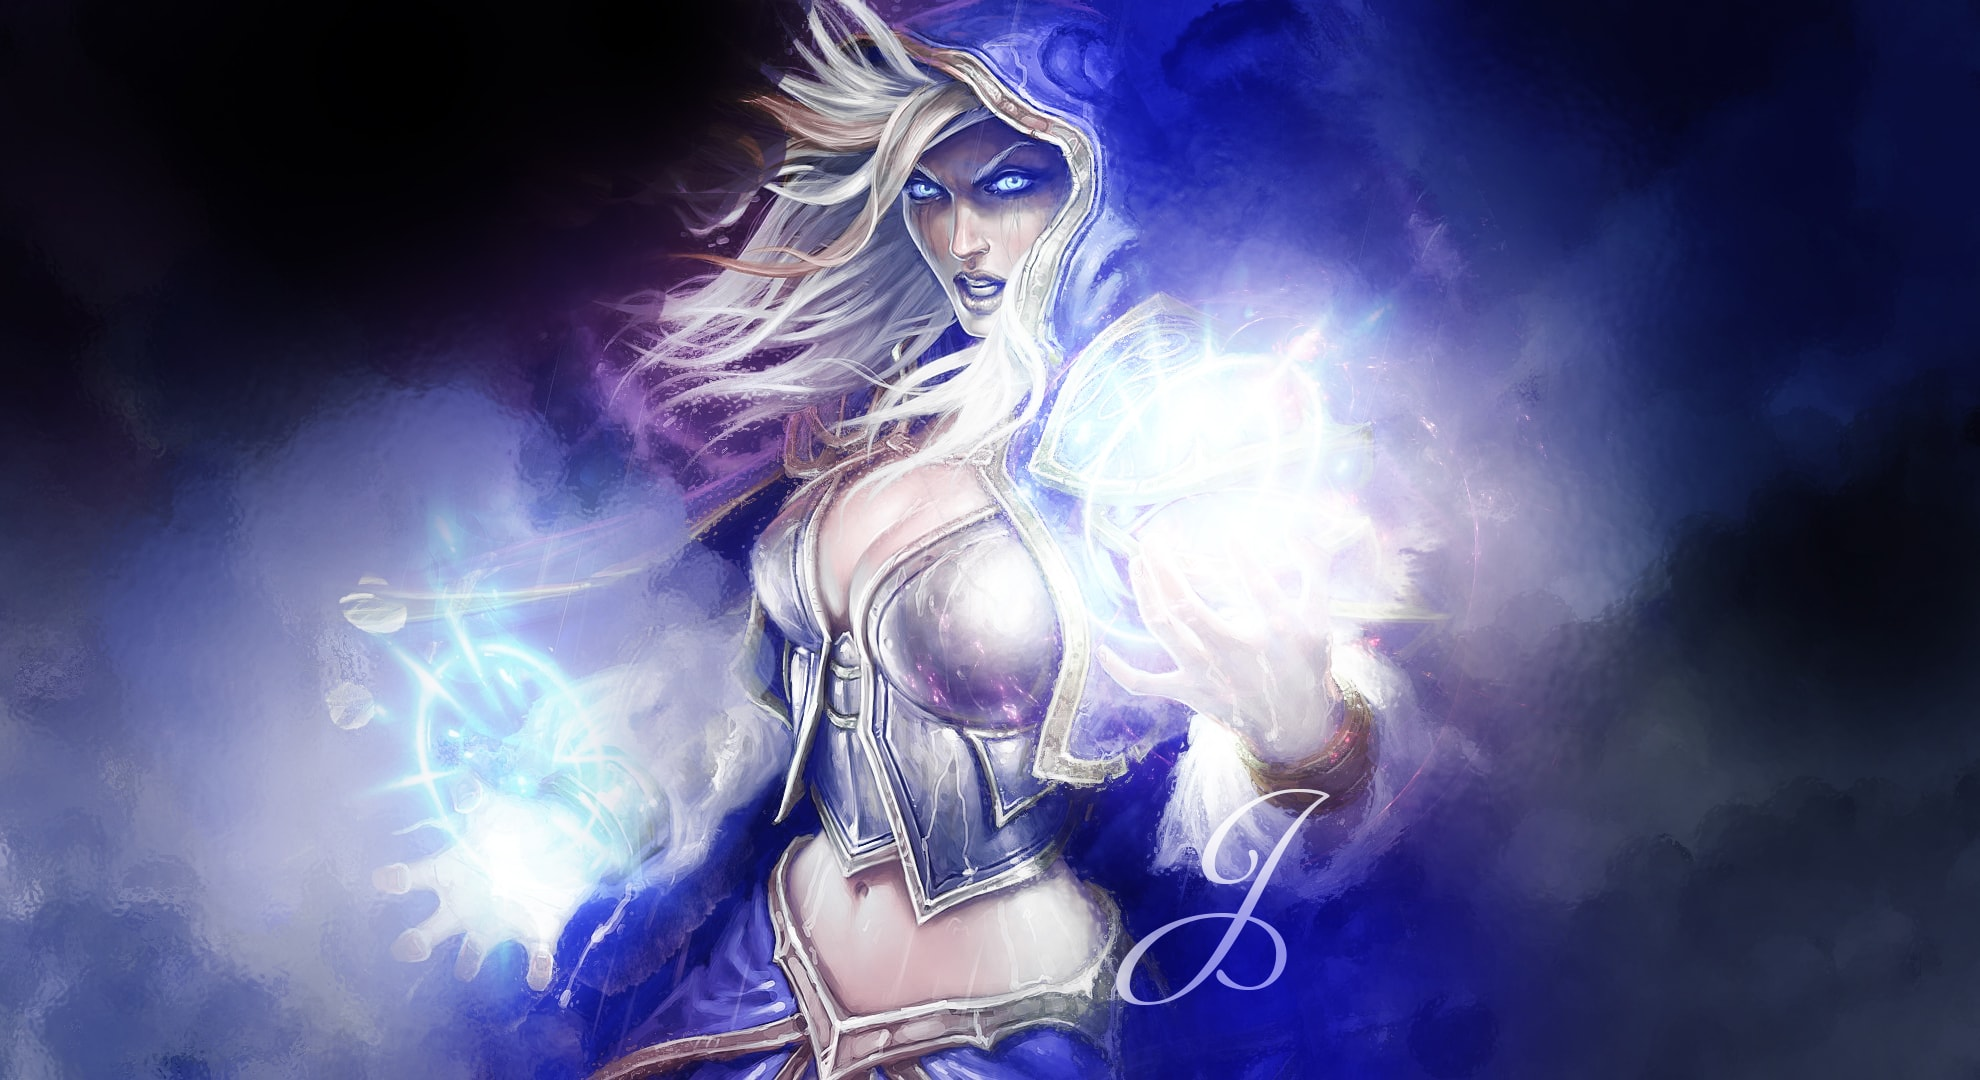 Hearthstone: Jaina Proudmoore widescreen wallpapers